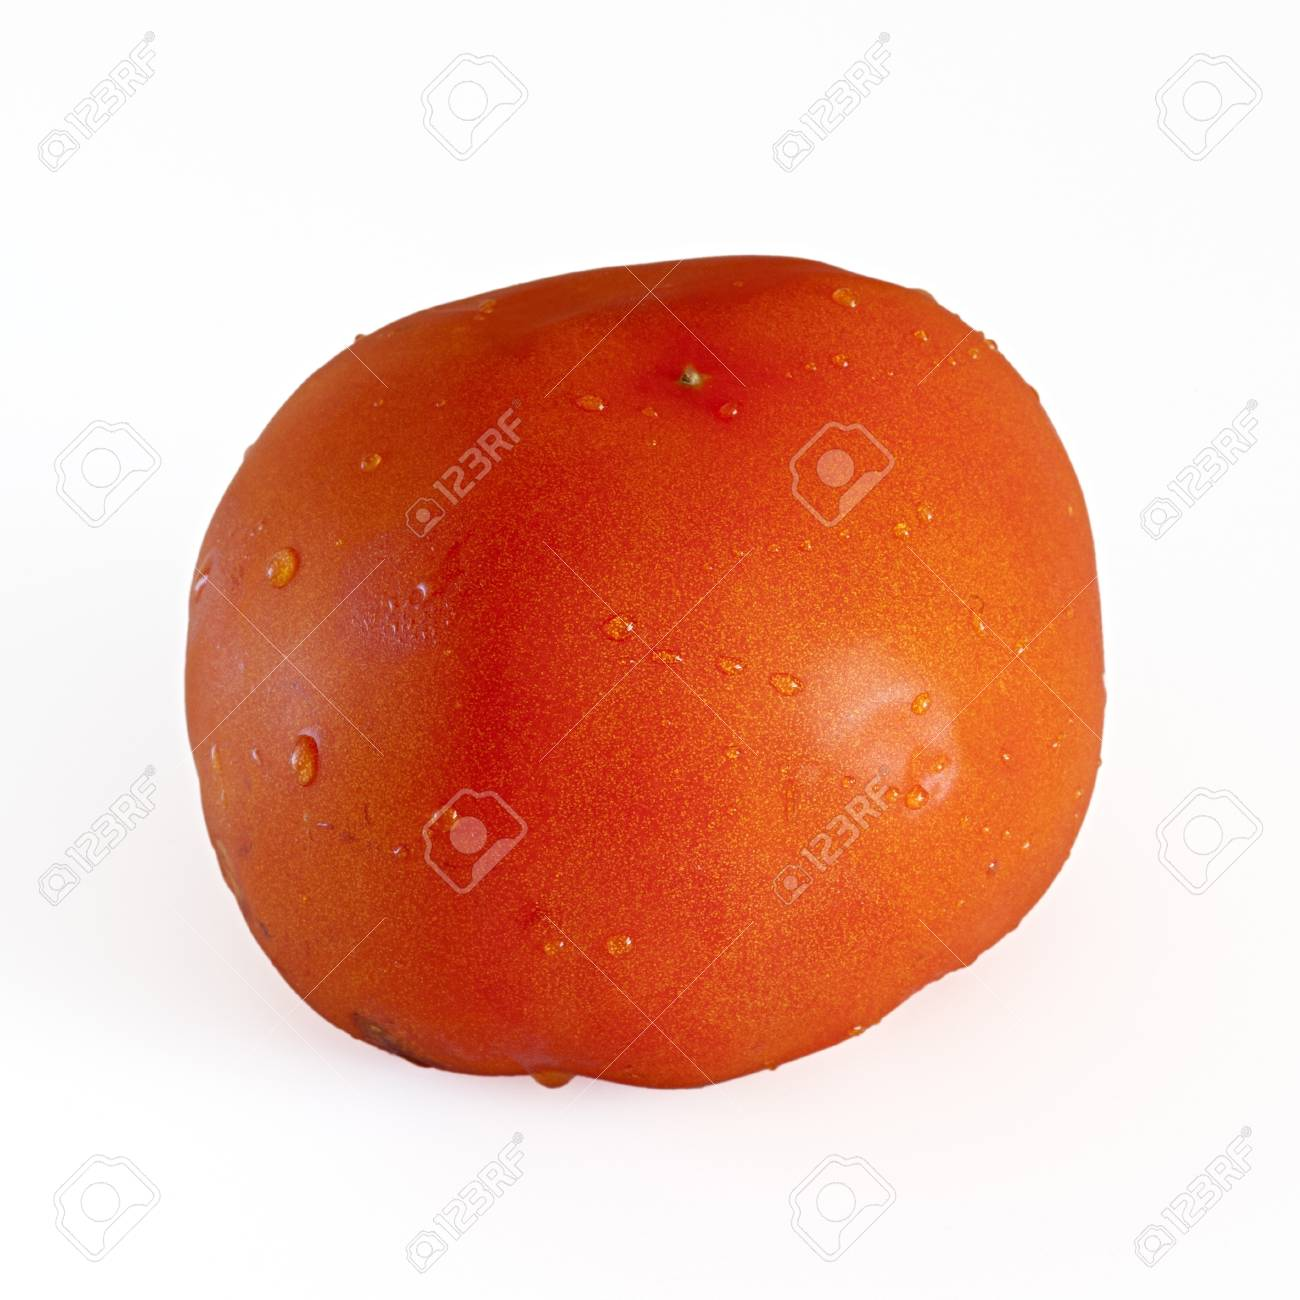 red tomato with isolated background Stock Photo - 8485696